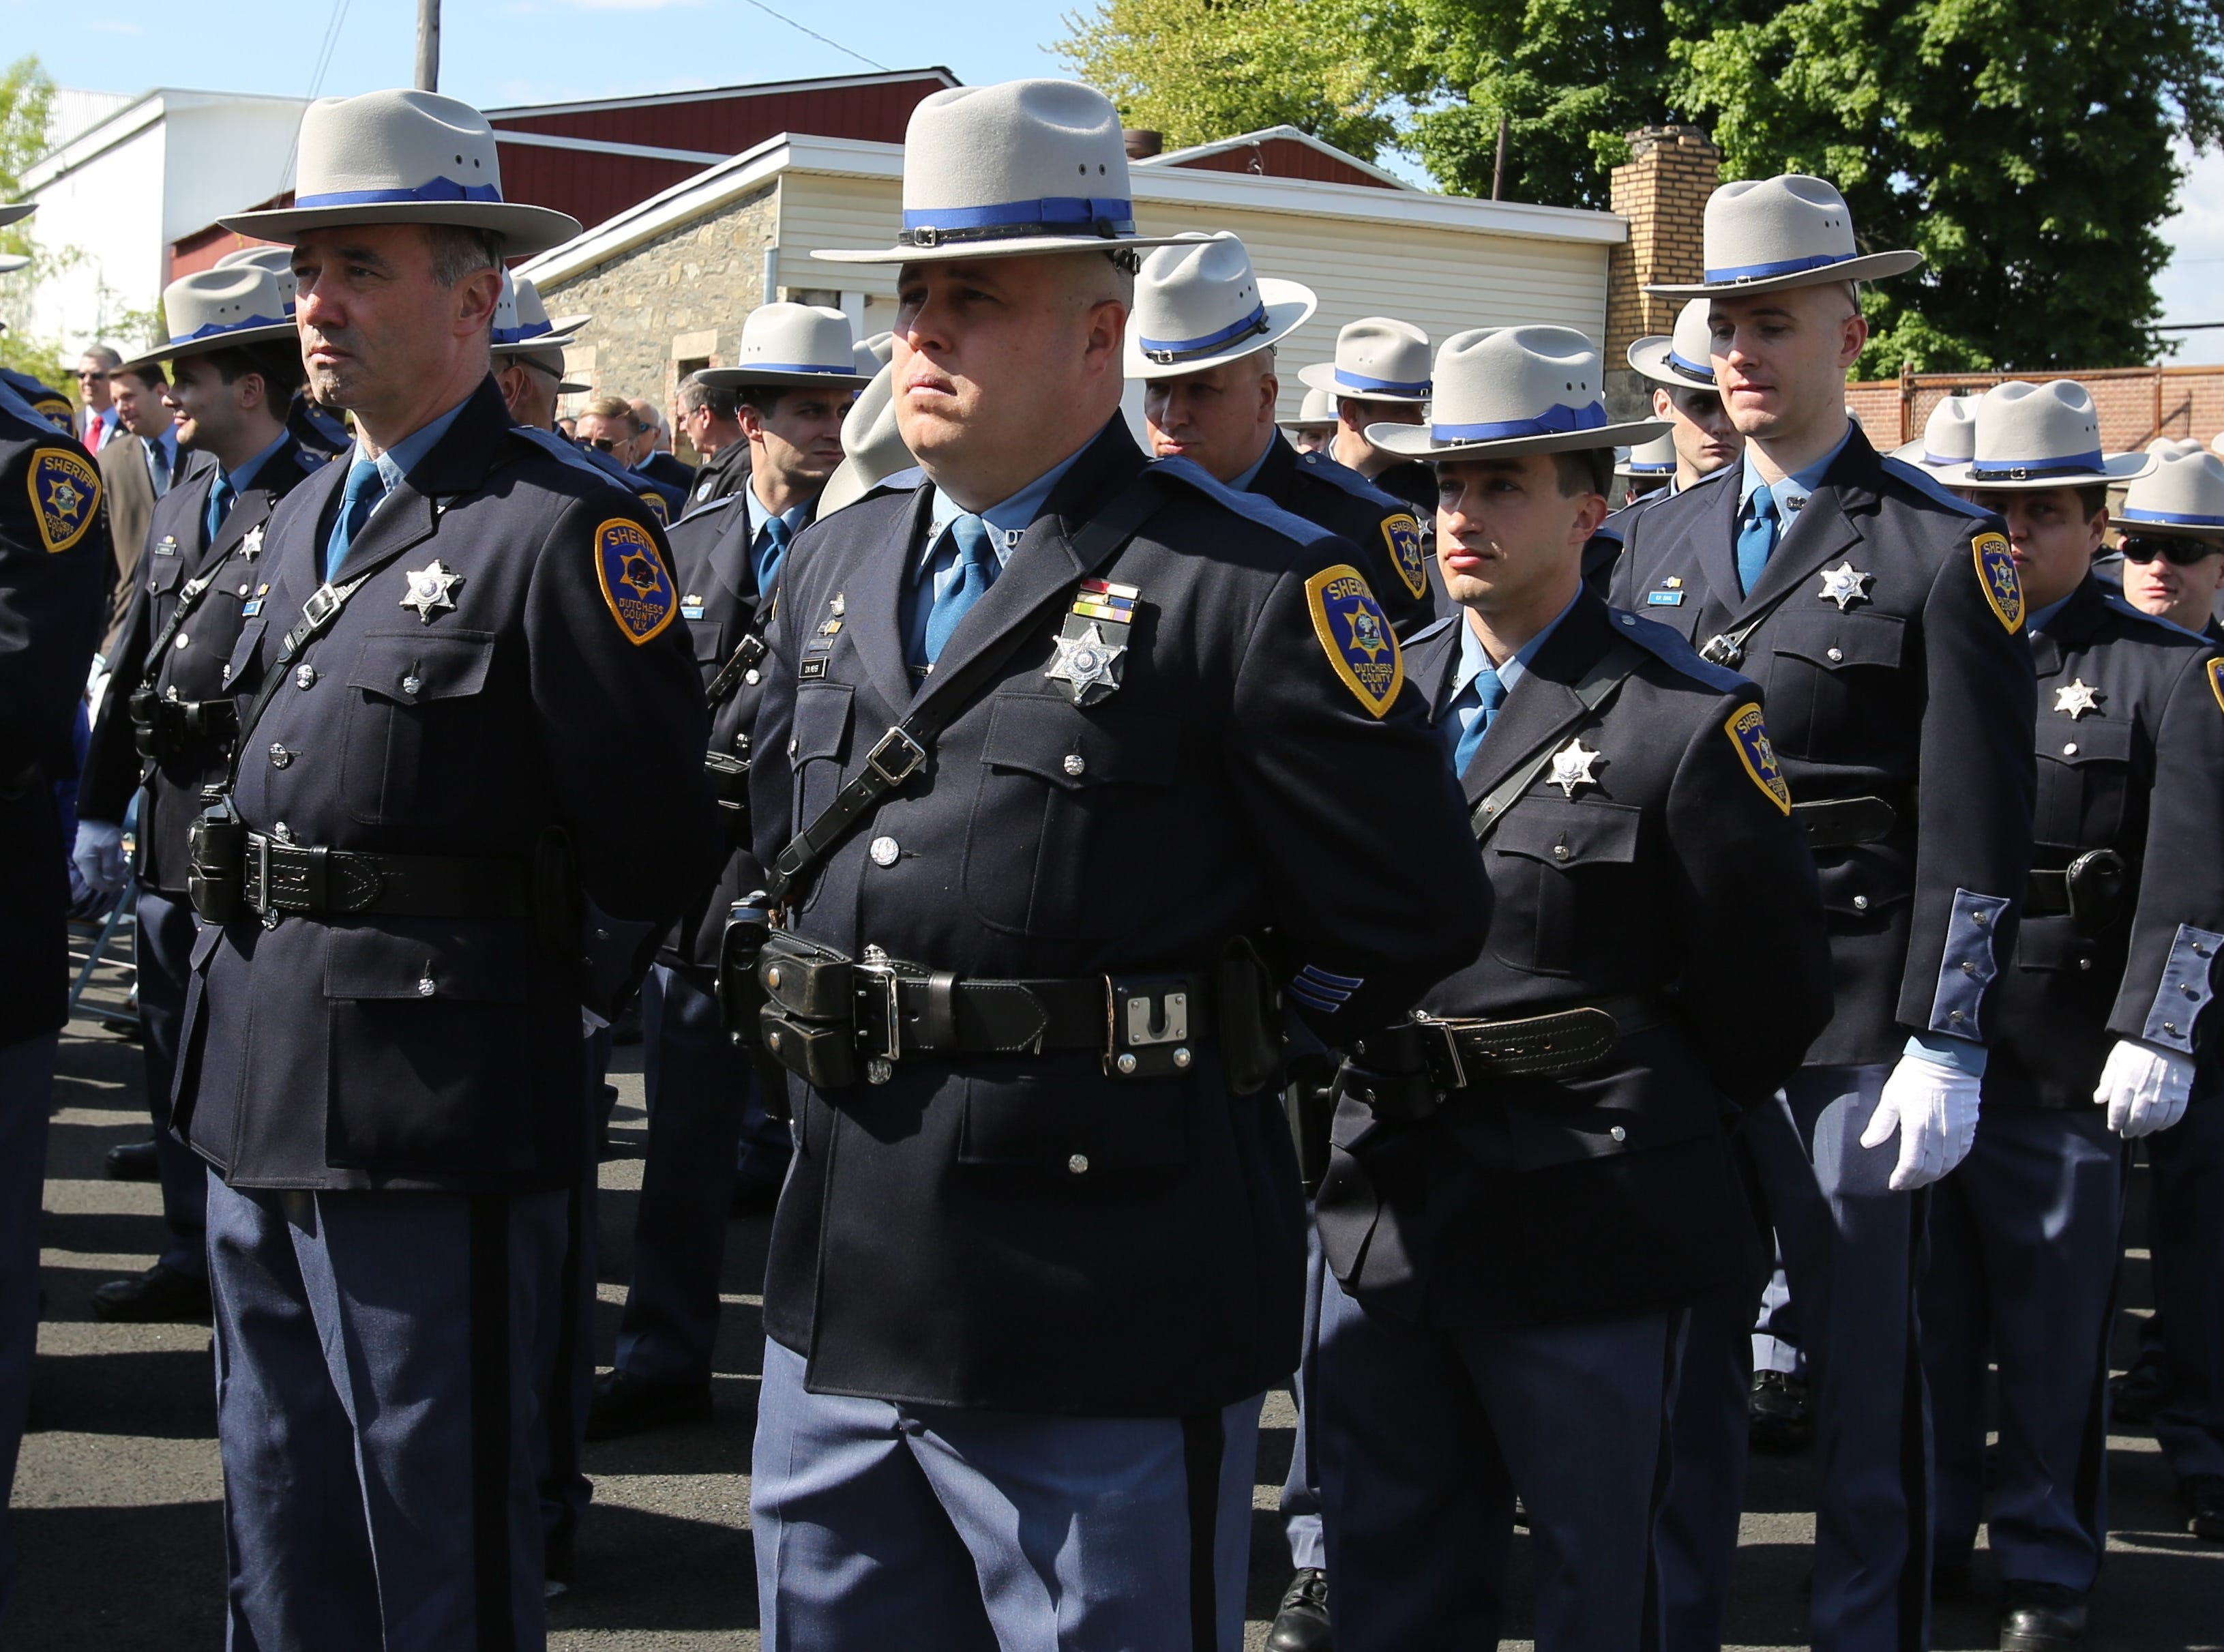 Multiple law enforcement officials stand in the parking lot of the Dutchess County Sheriff's Office in honor of Memorial Day on May 16, 2019.